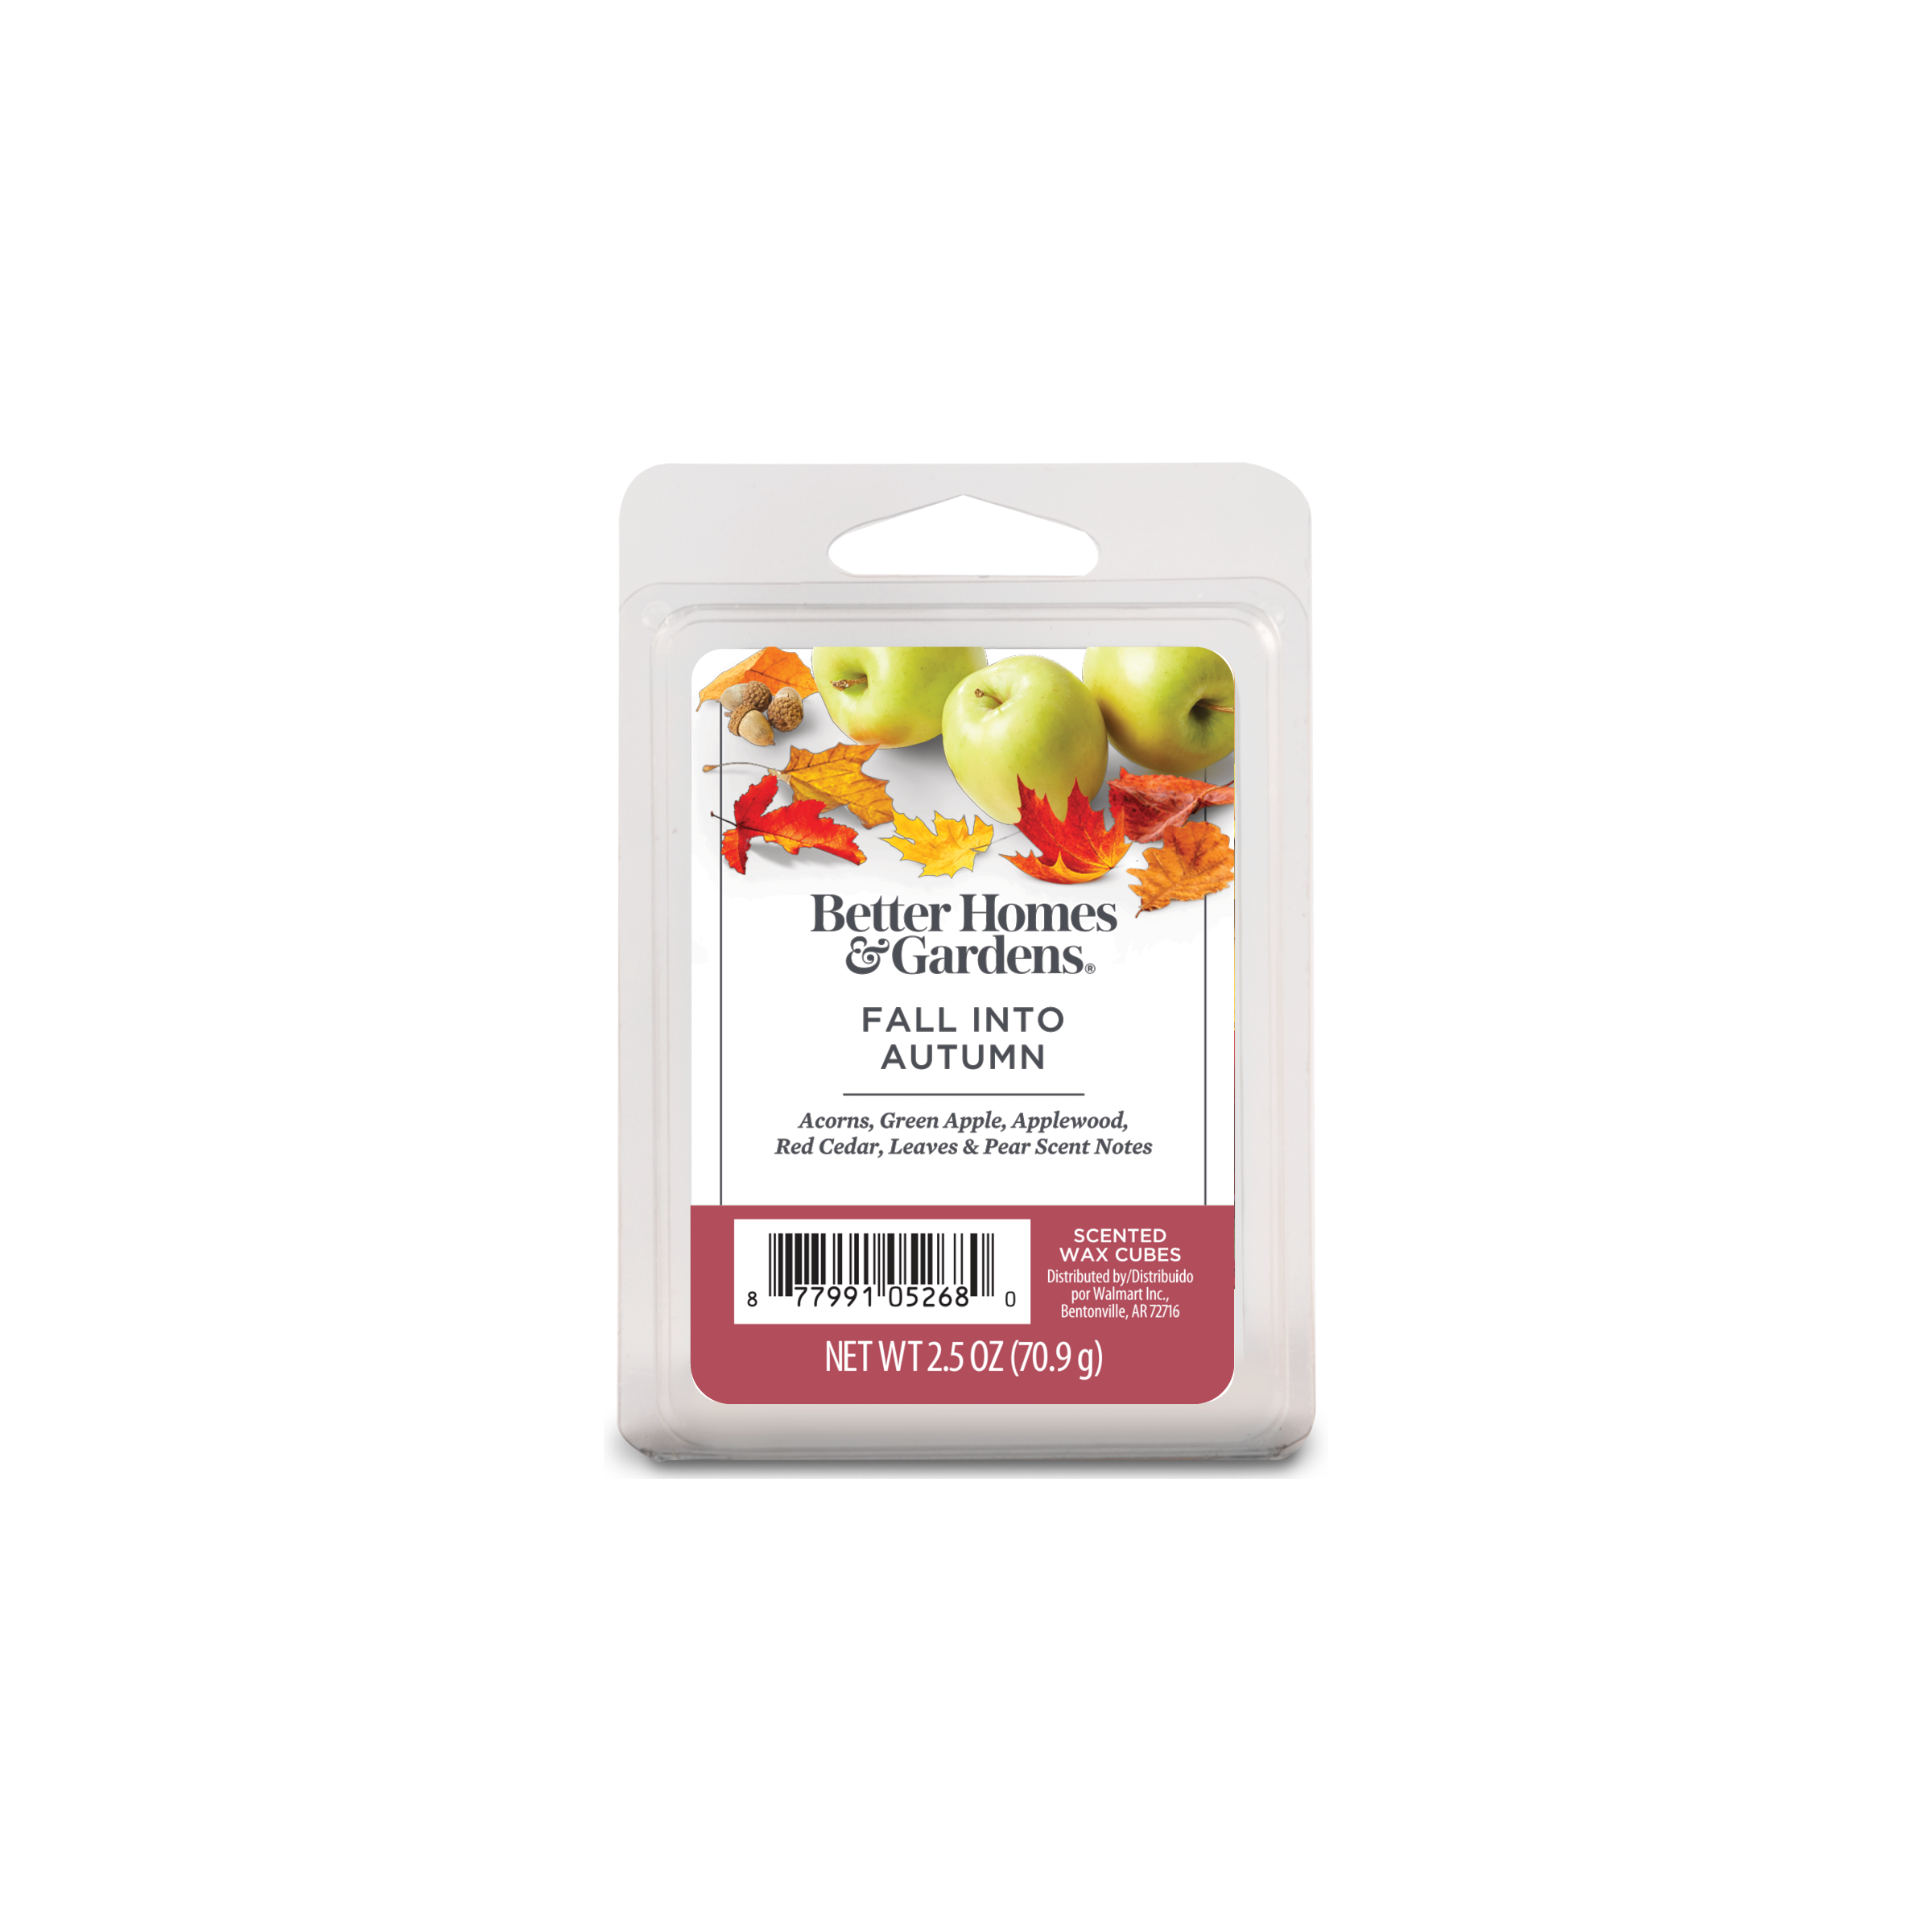 Fall Into Autumn Scented Wax Melts, Better Homes & Gardens, 20.20 oz ...